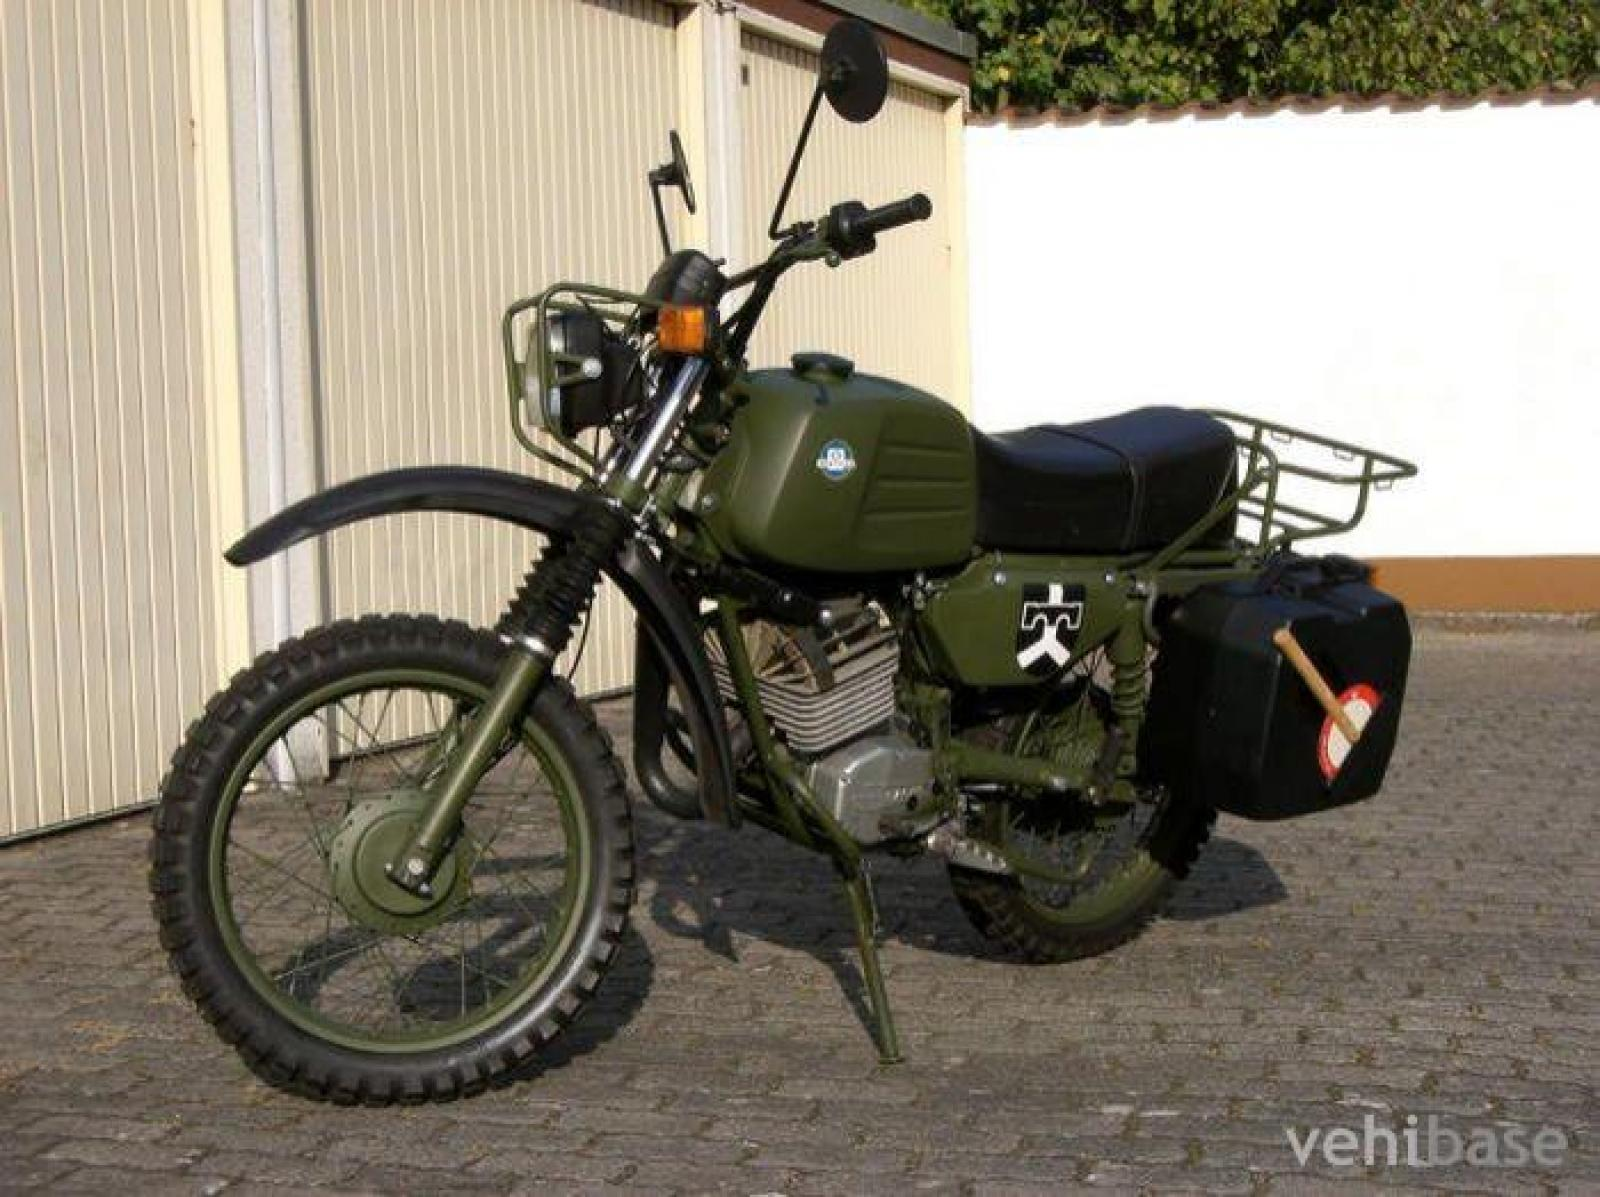 Hercules K 125 Military 1980 images #74146